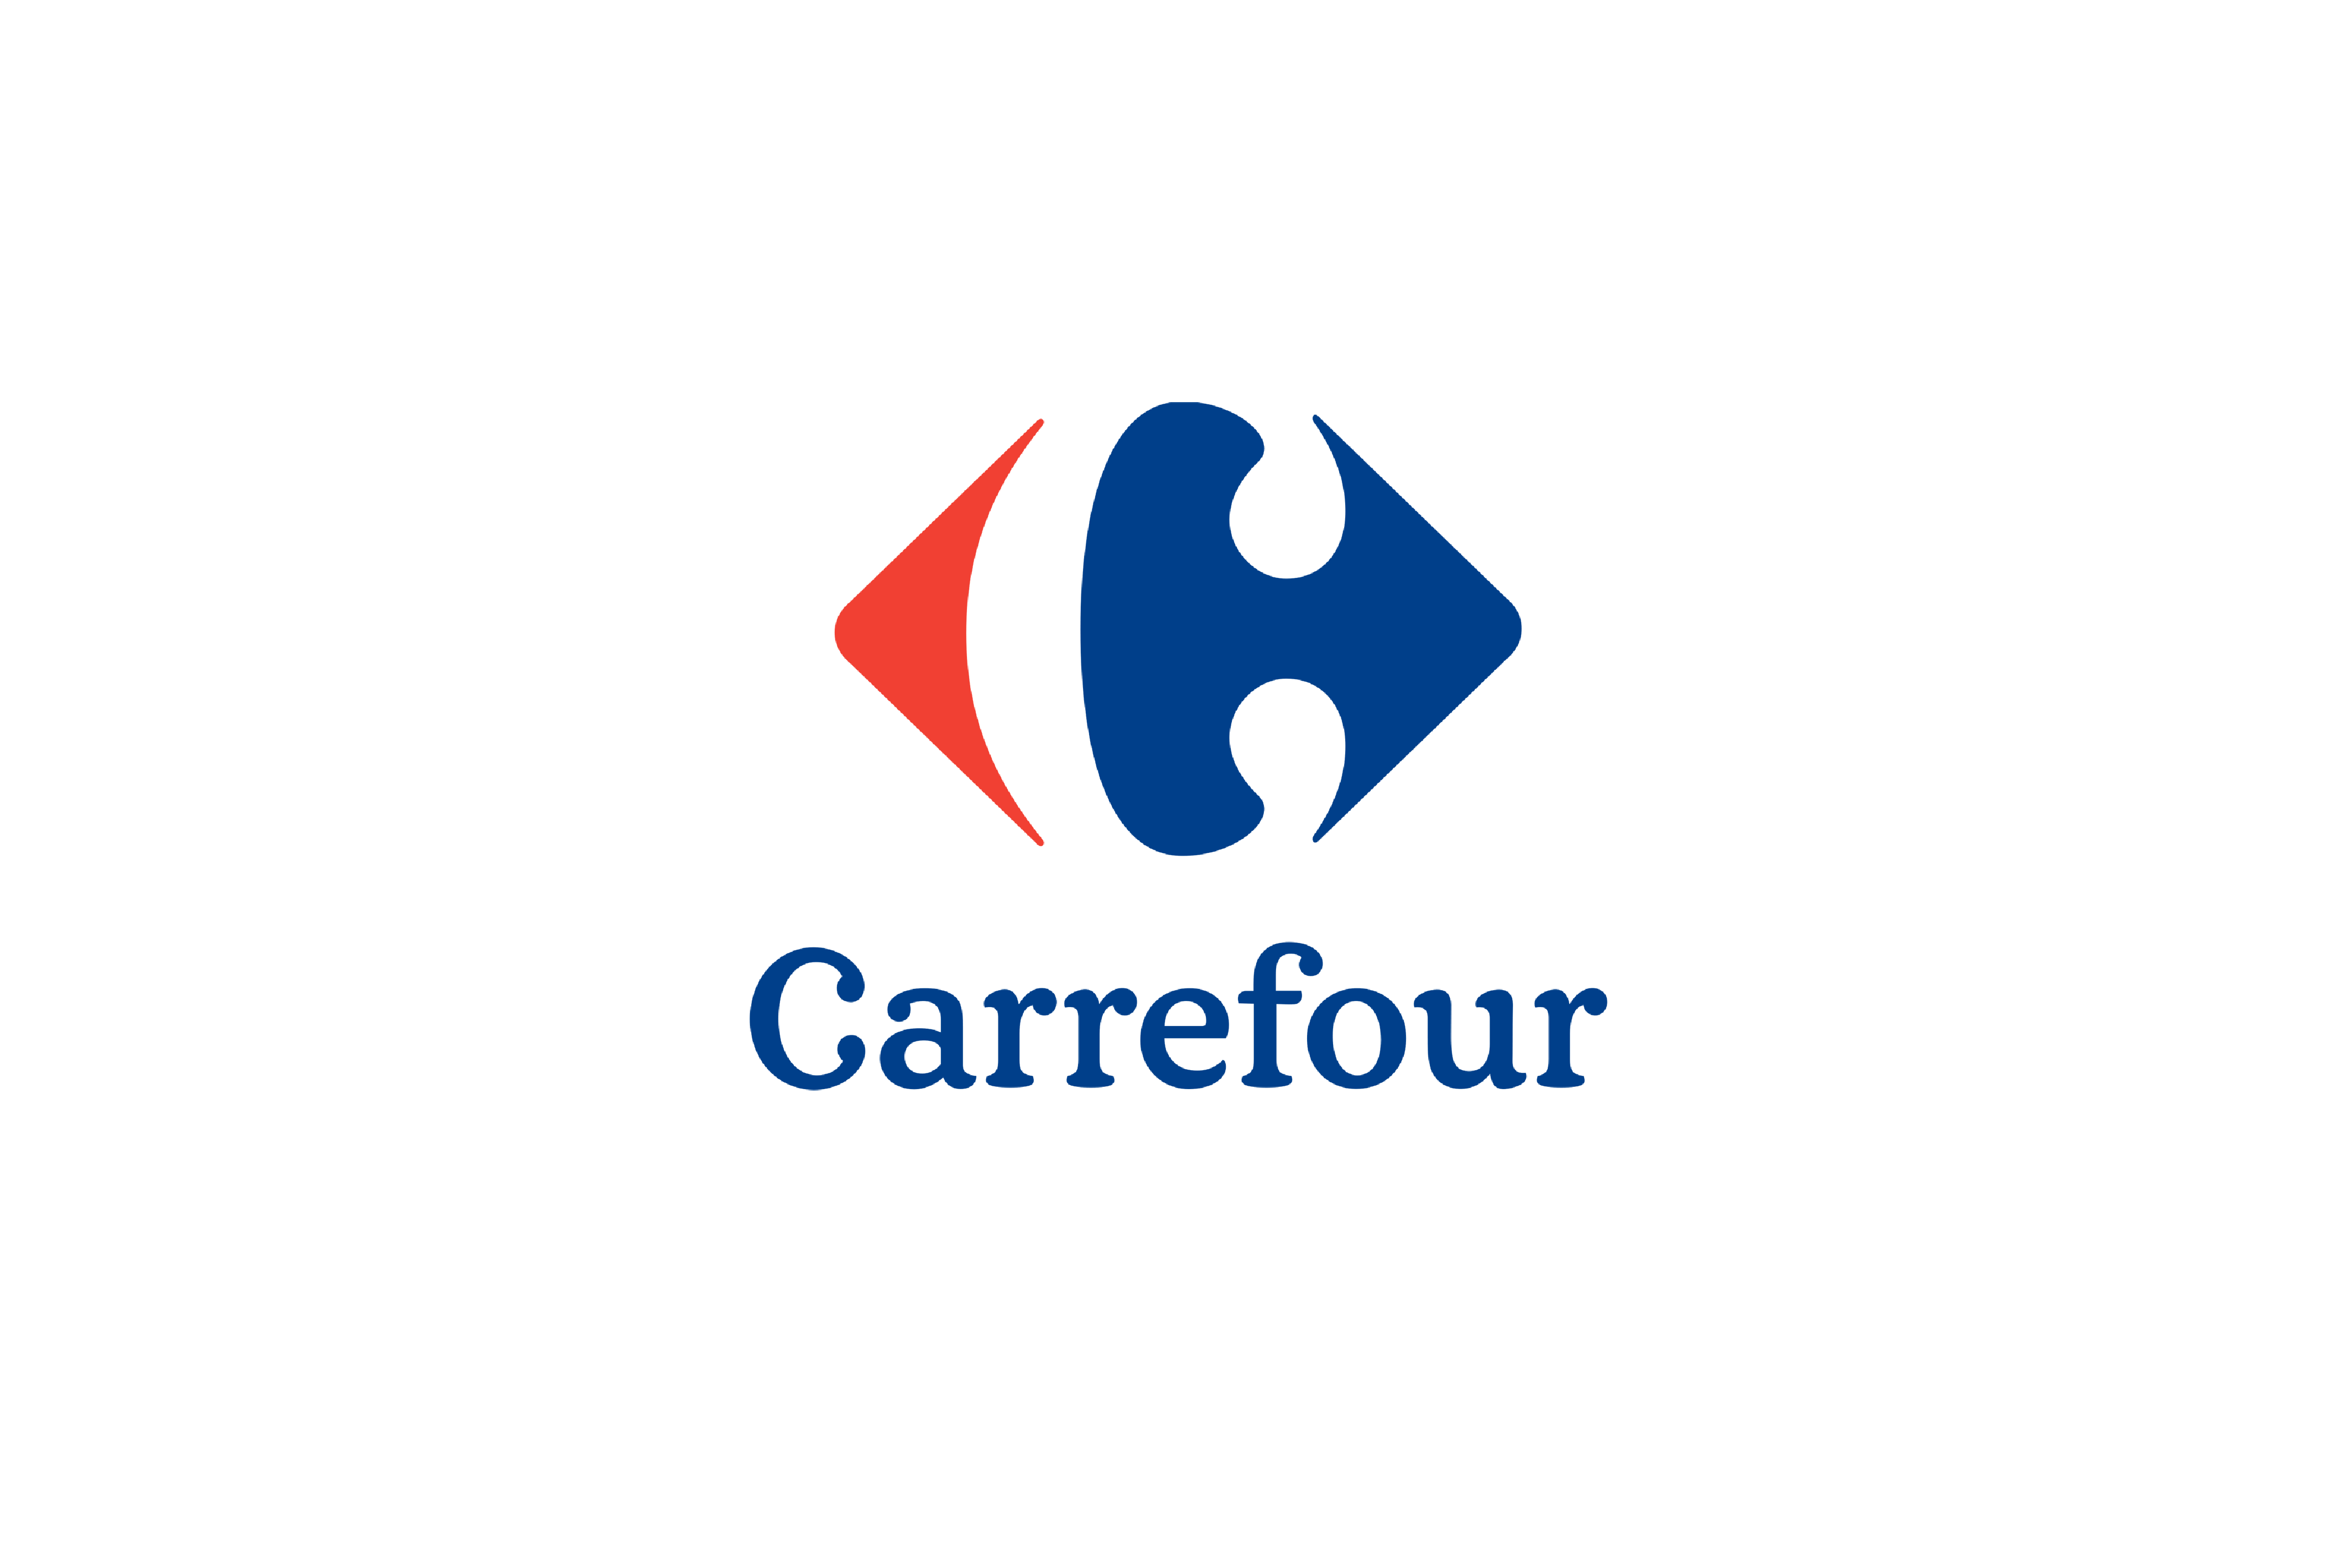 Interview with Stéphane Cossic, Customer Feedback Manager at Carrefour